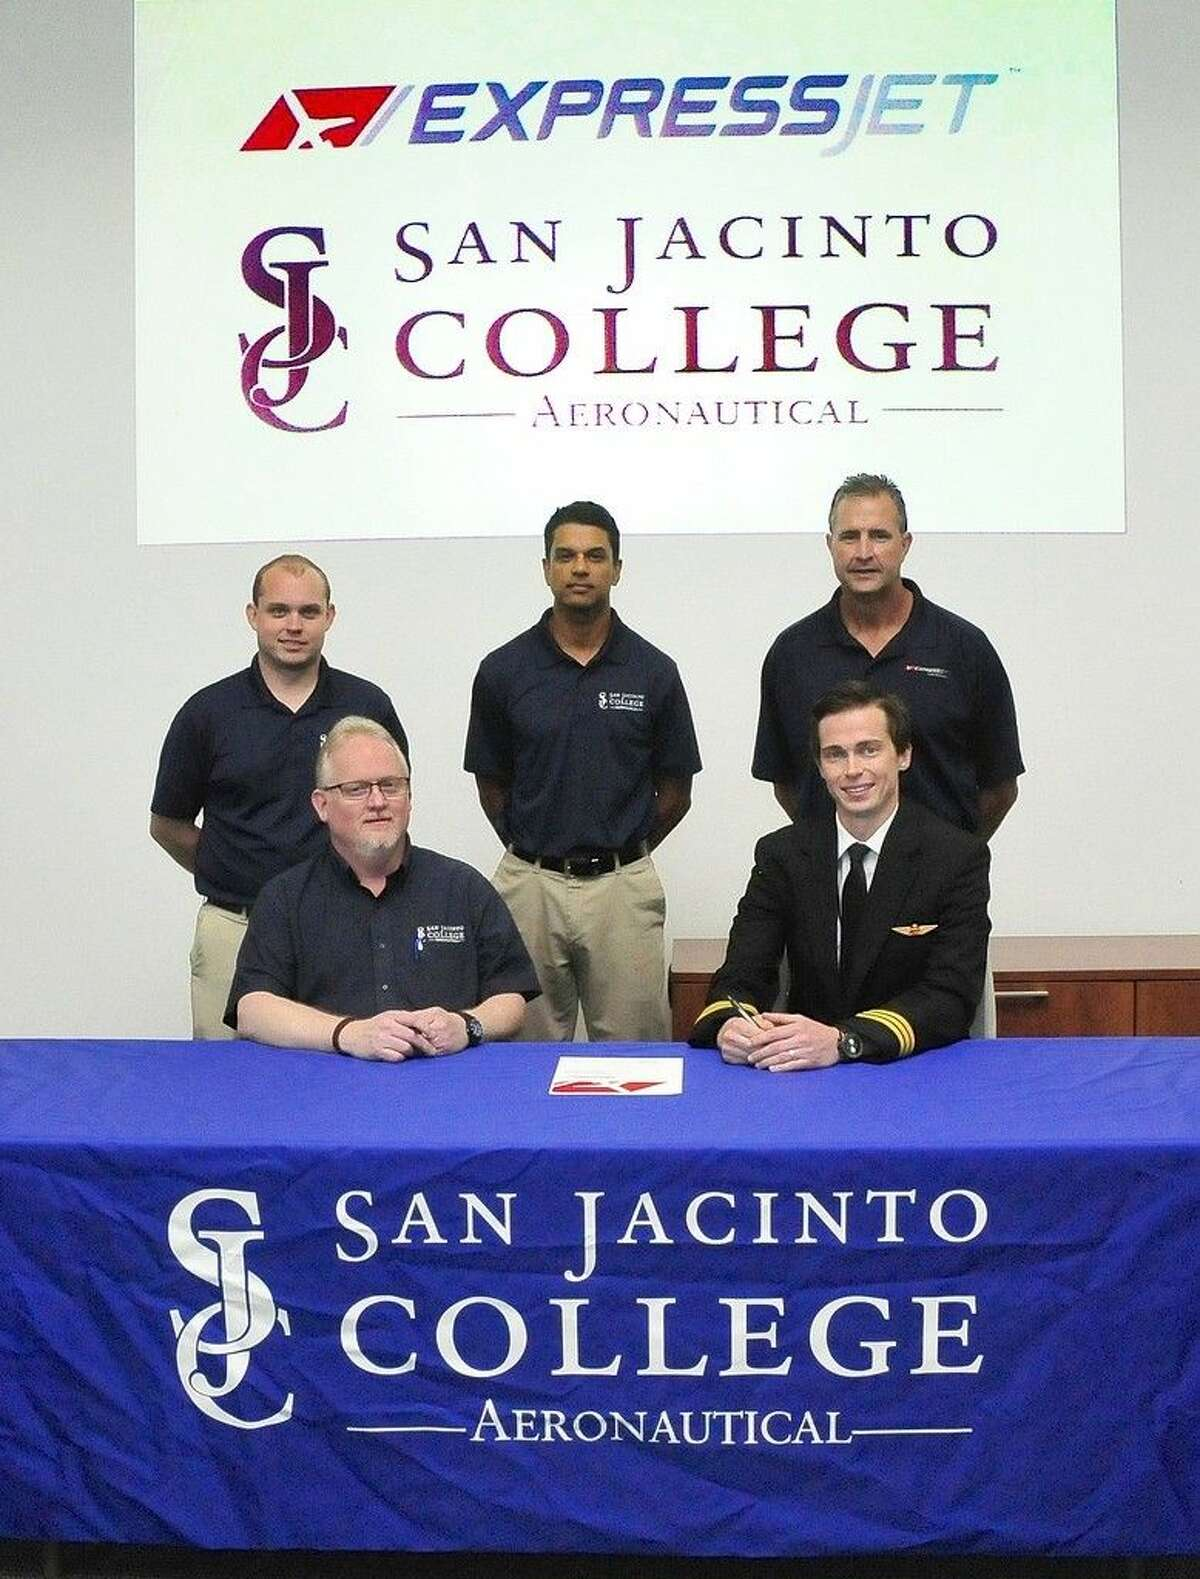 Pictured (left to right, front row): Mark Deschner, San Jacinto College transportation department chair, and Matthew Applegate, first officer and pilot recruiter with ExpressJet Airlines. (left to right, back row) Scott Griffith, San Jacinto College career pilot instructor; Travis Barker, San Jacinto College career pilot program director; and Dan Rumley, assistant chief for ExpressJet Airlines in Houston. Photo credit: Jeannie Peng-Armao, San Jacinto College marketing, public relations, and government affairs department.